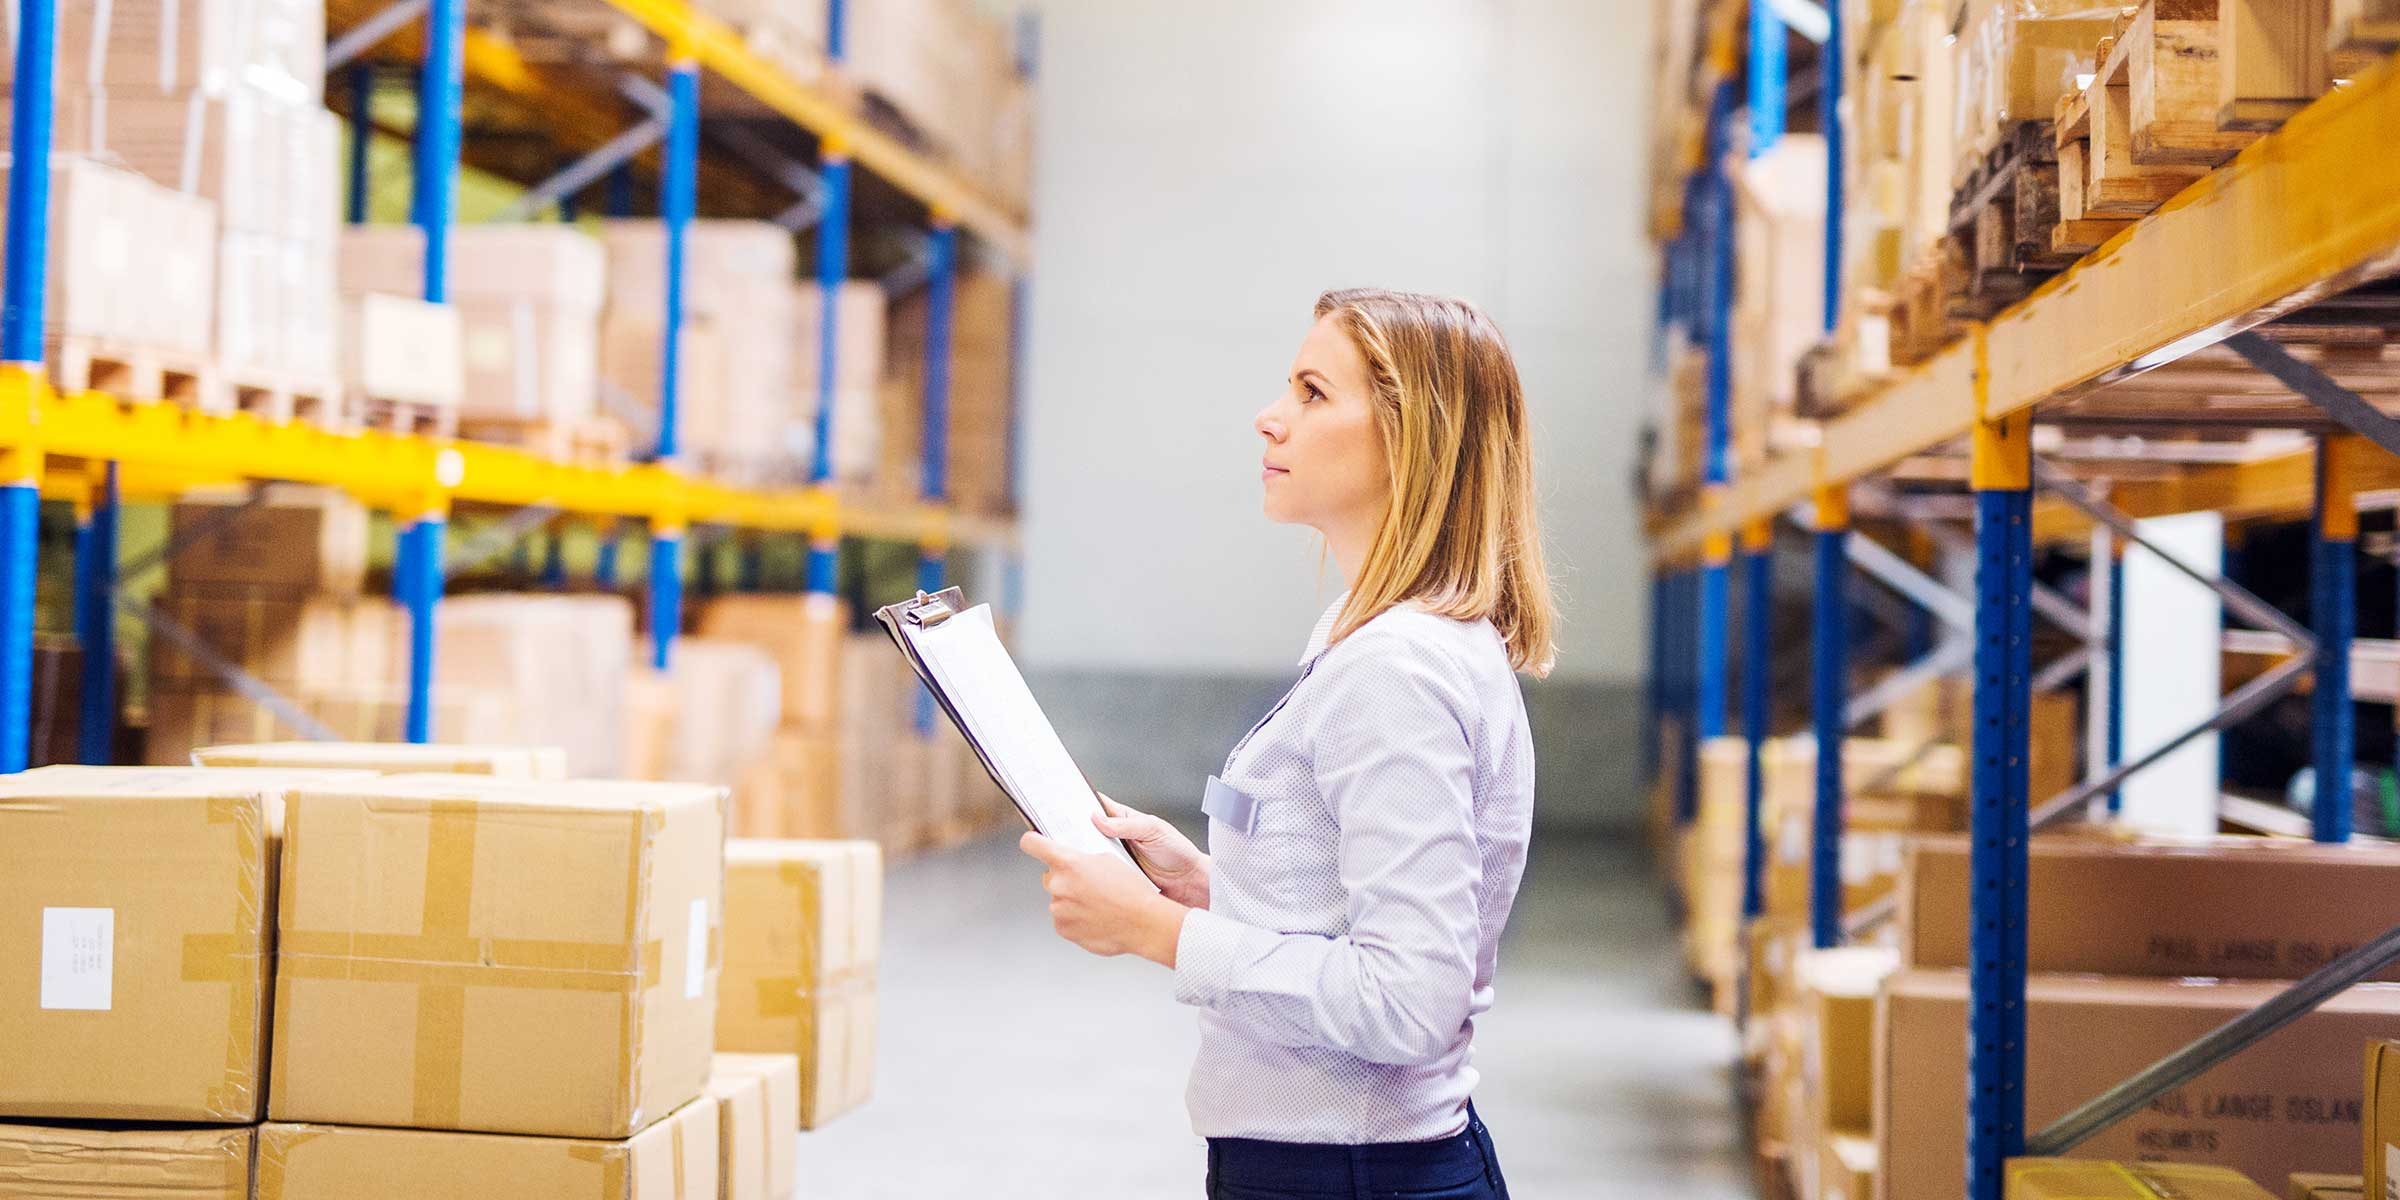 Order Fulfillment Glossary: The Top 30 Terms You Need to Know